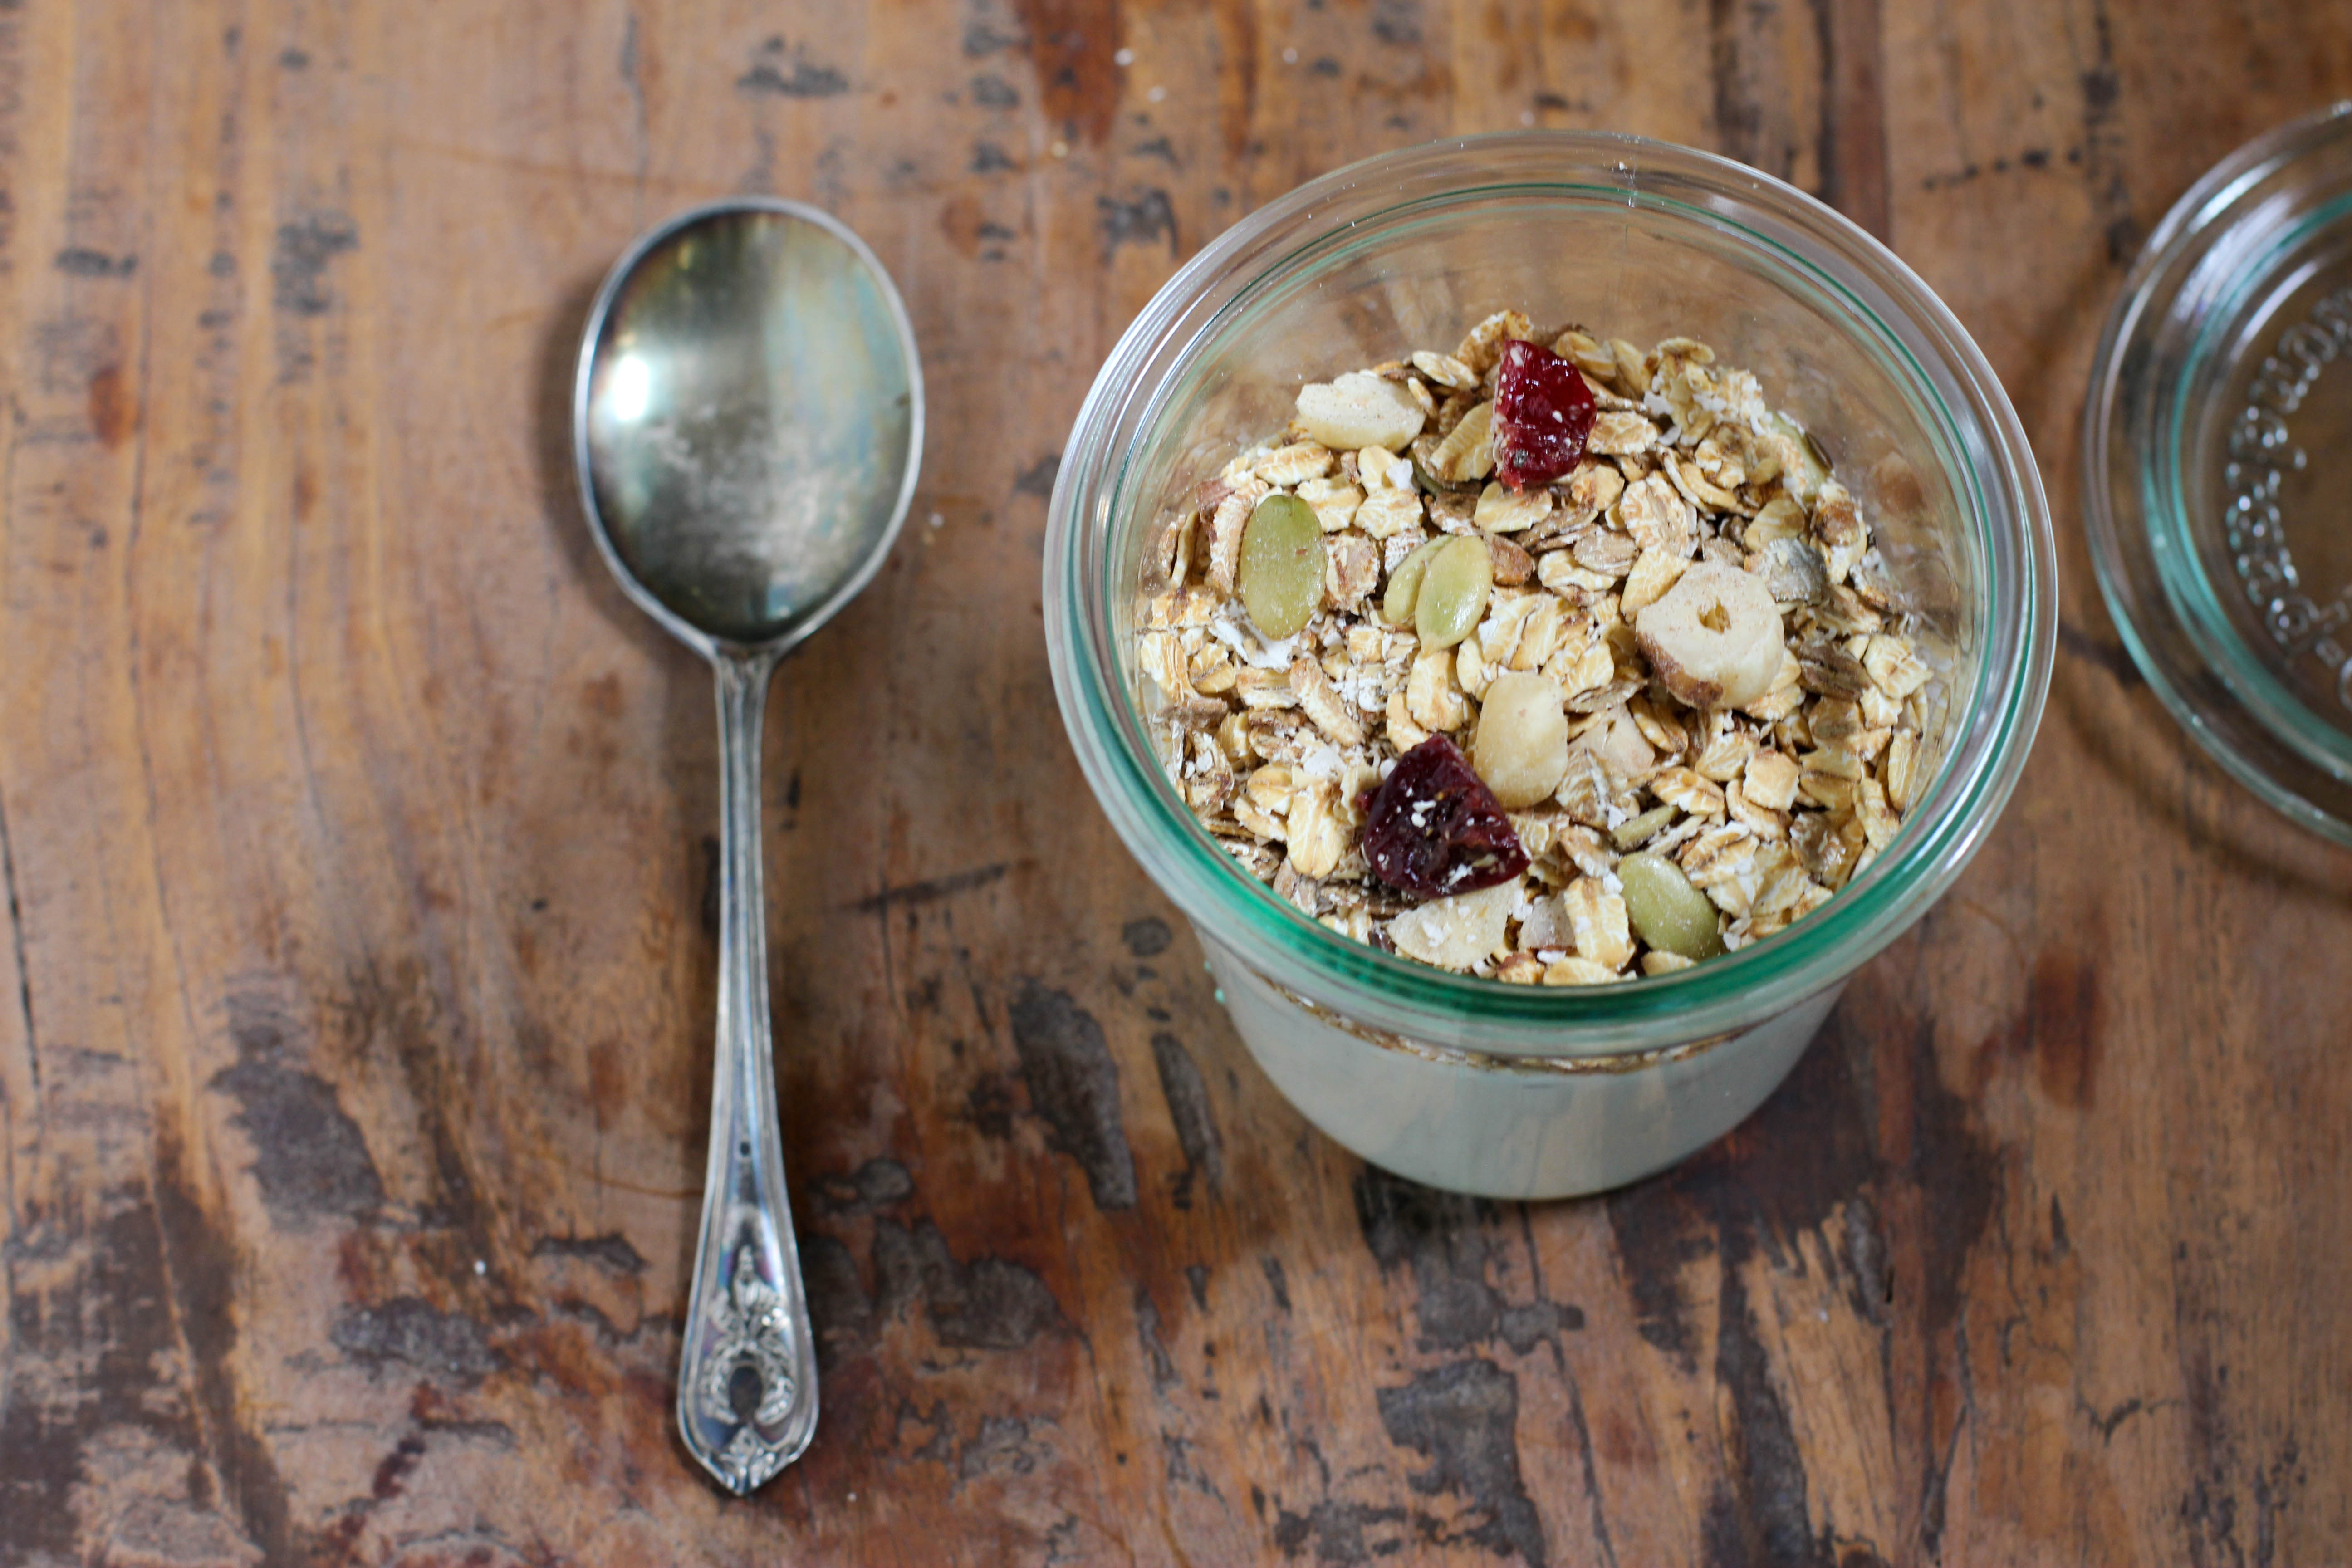 Homemade Muesli Recipe for breakfast in a jar | Vintage Mixer